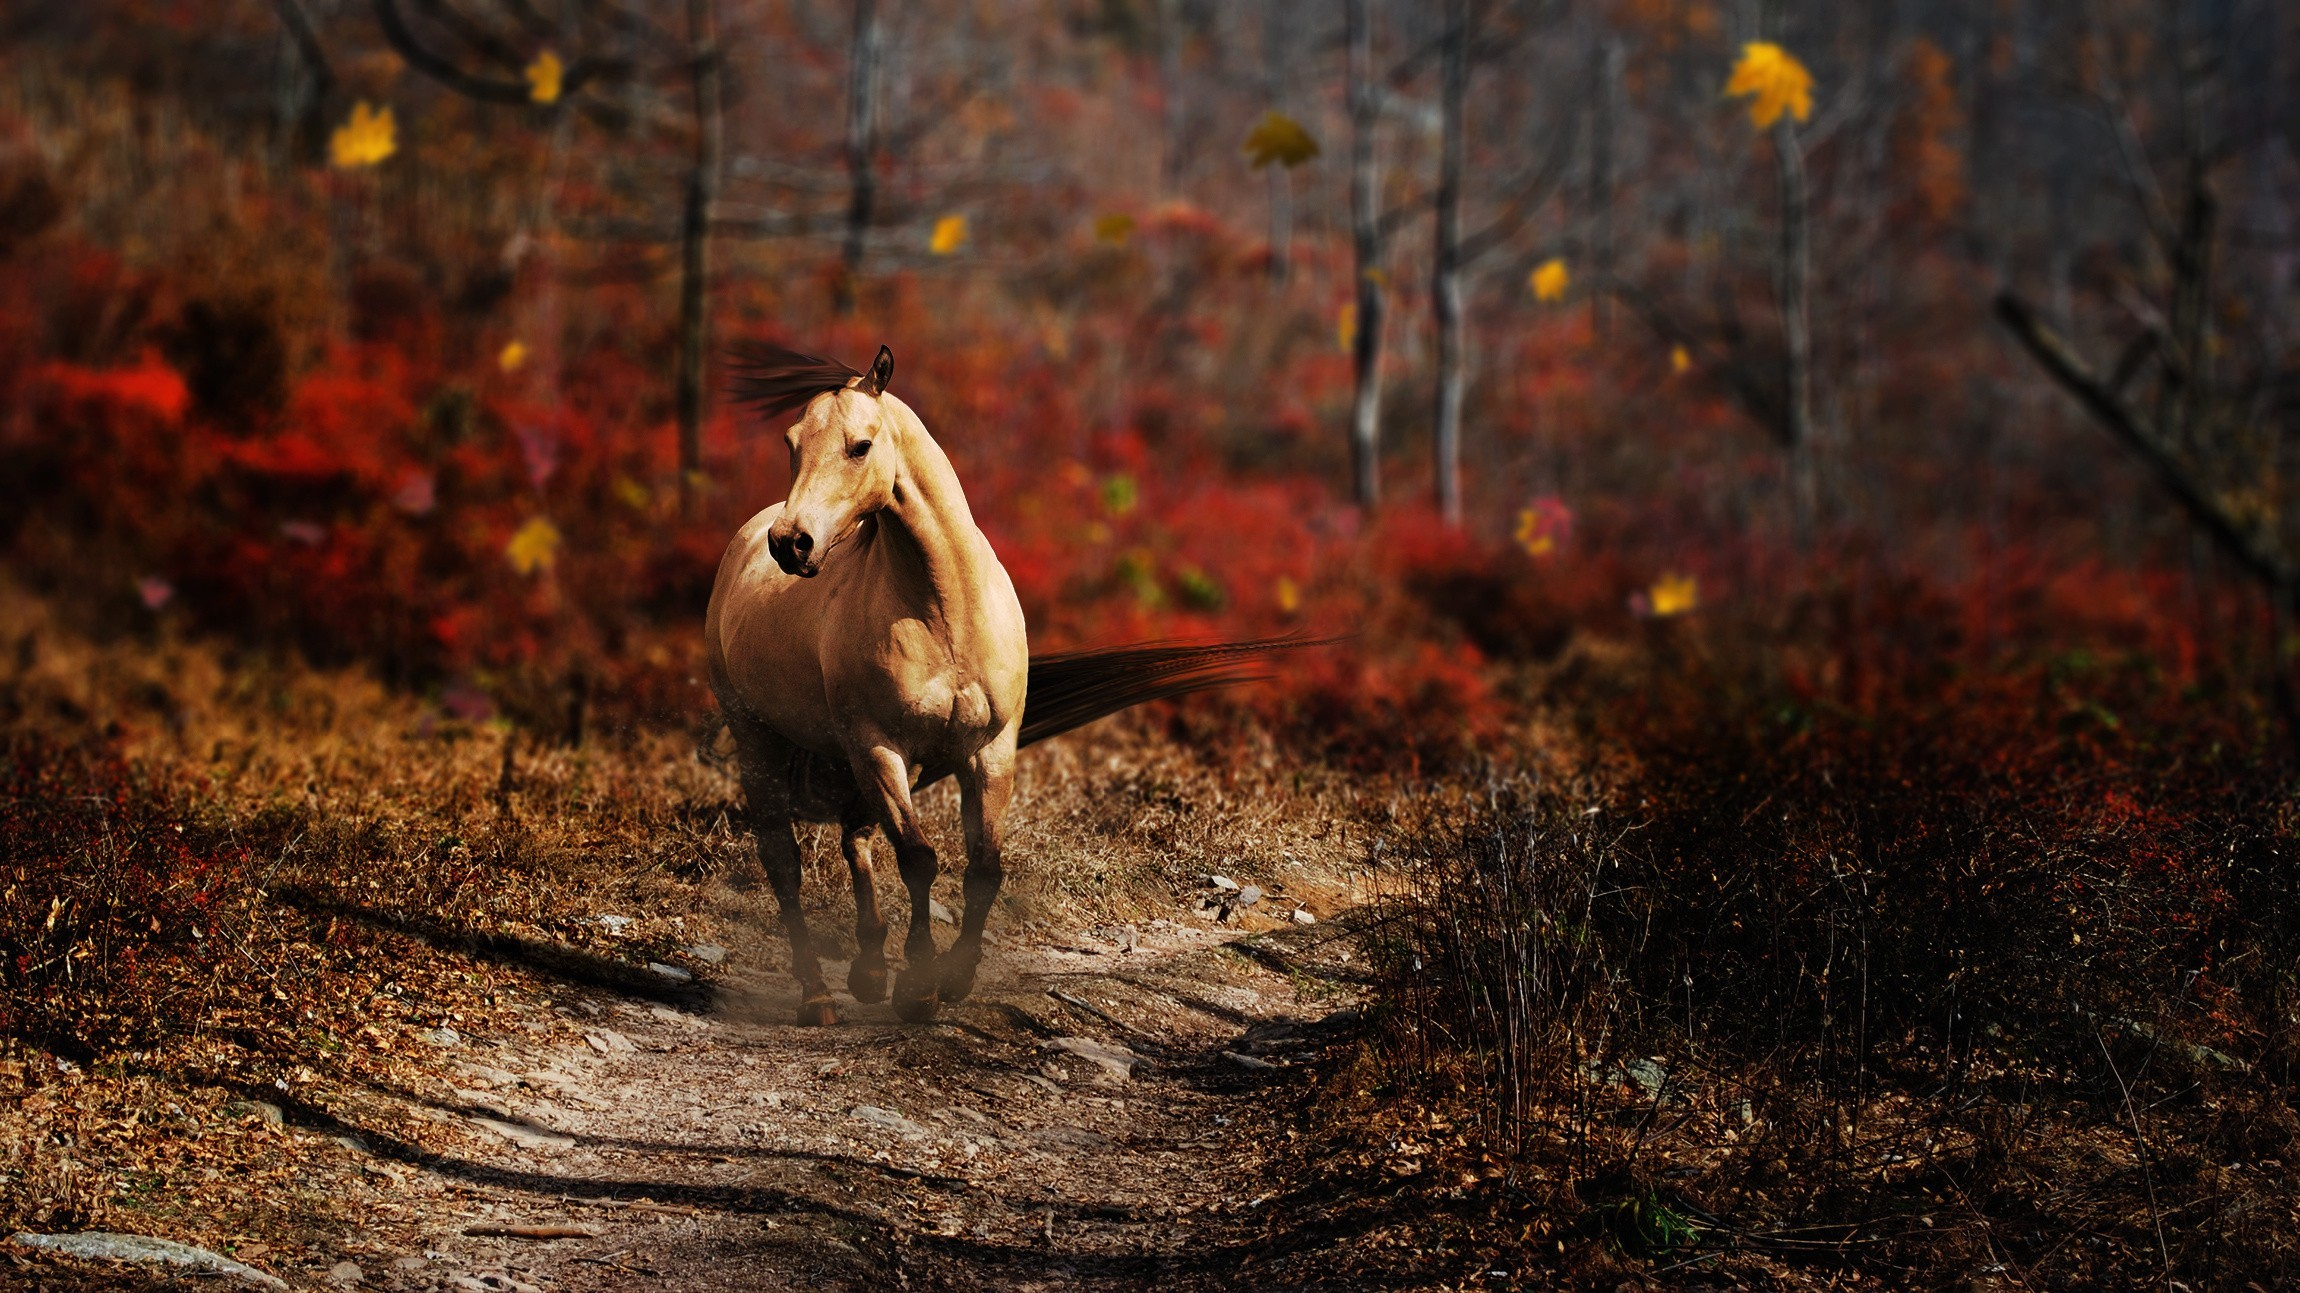 Nature Horses Wallpaper